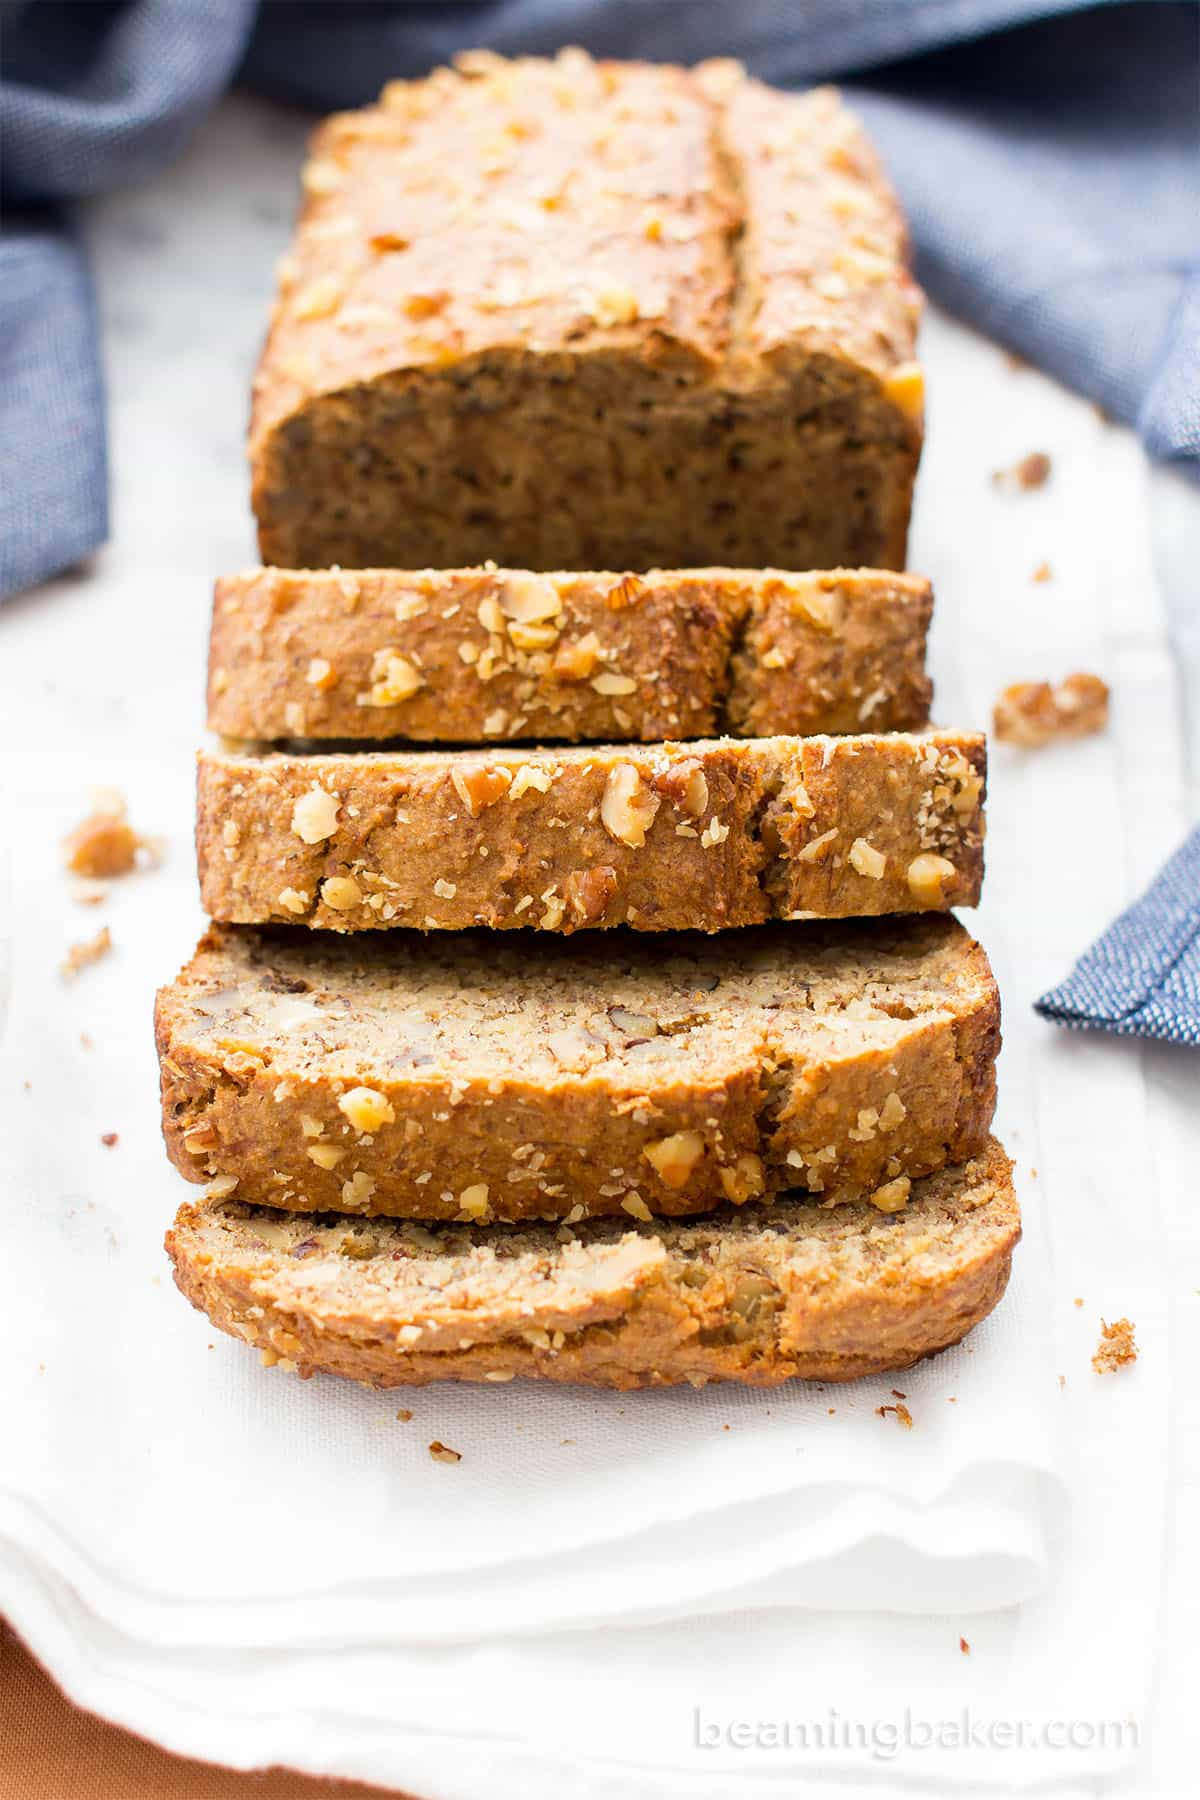 Sugar Free Banana Nut Bread With Cake Mix